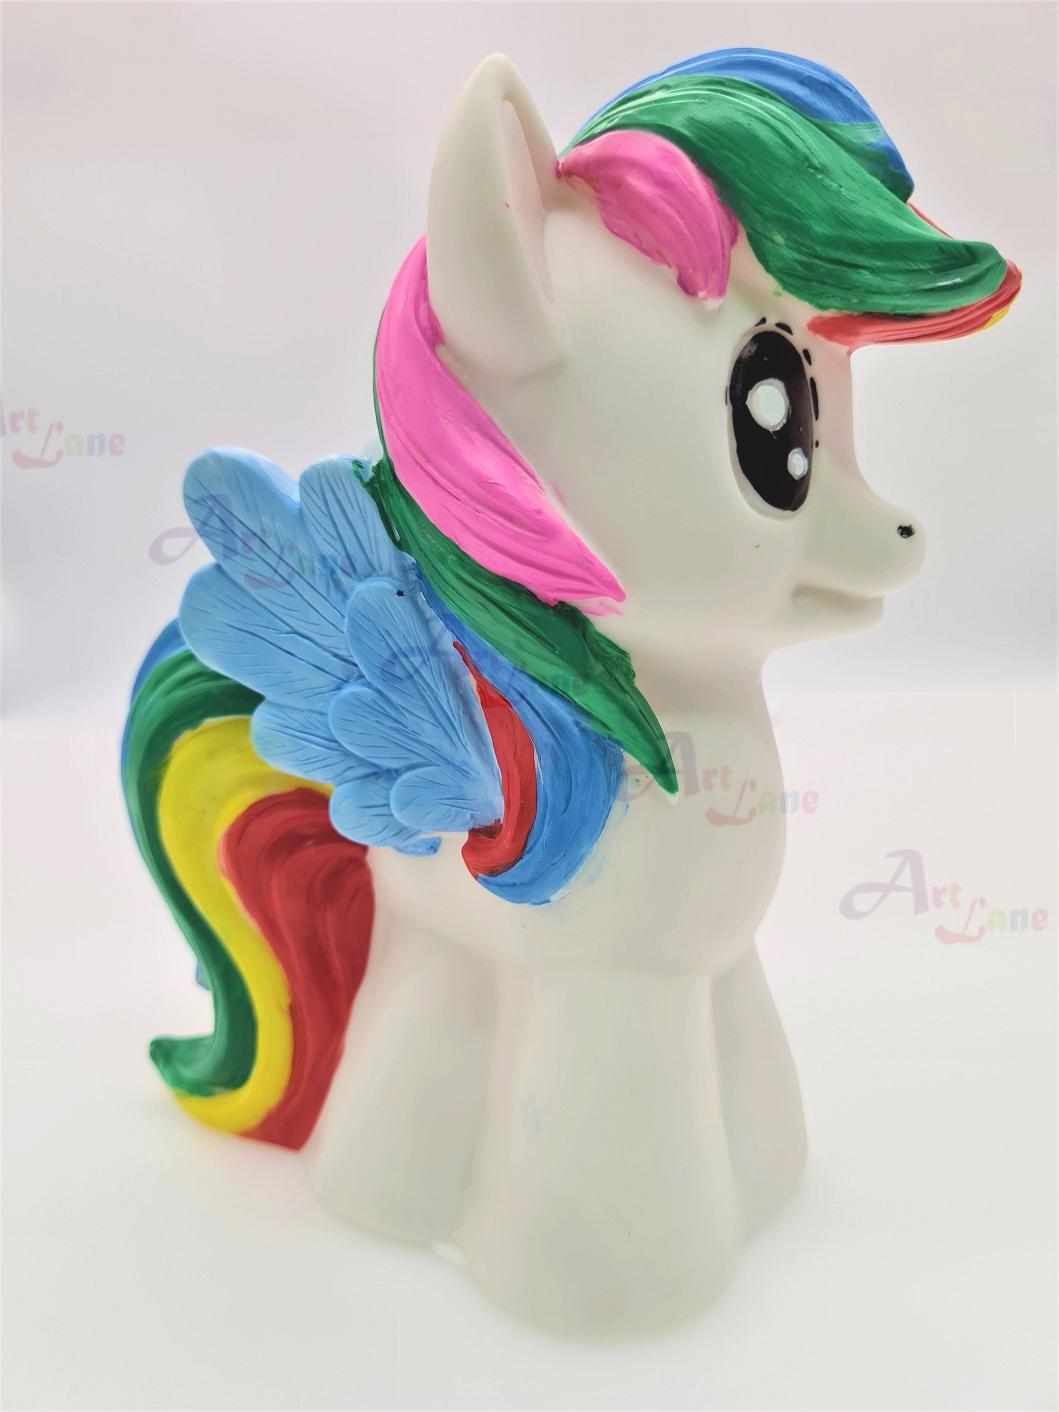 Coin-Bank-Rainbow-Pony-2 with watermark